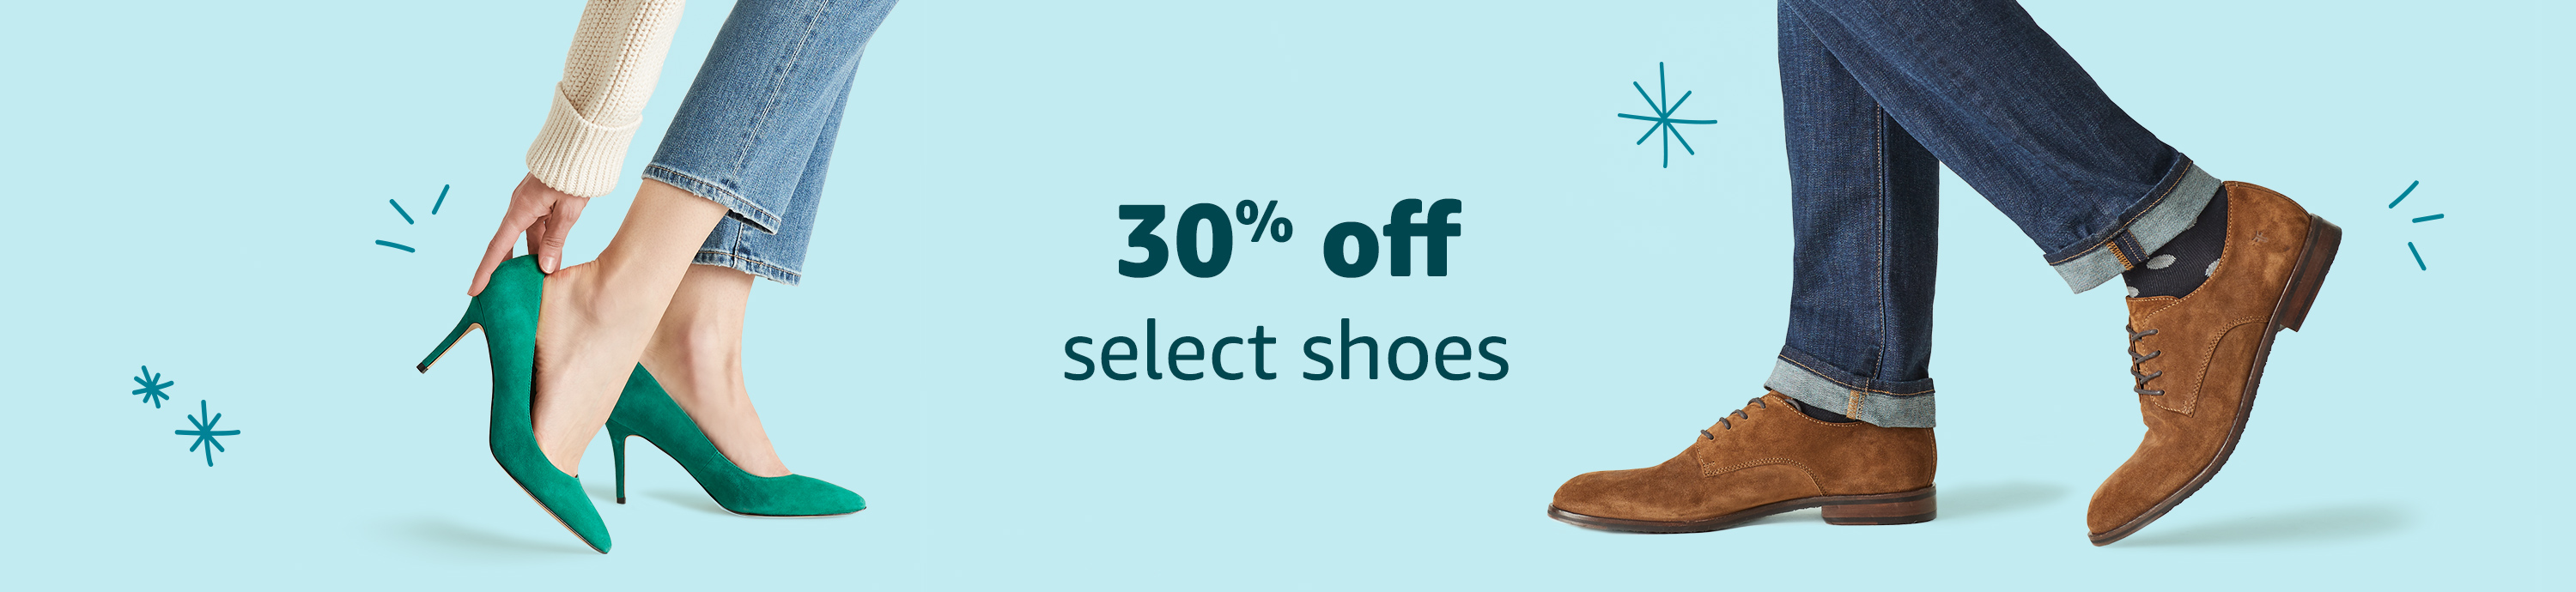 Up to 30% off select shoes